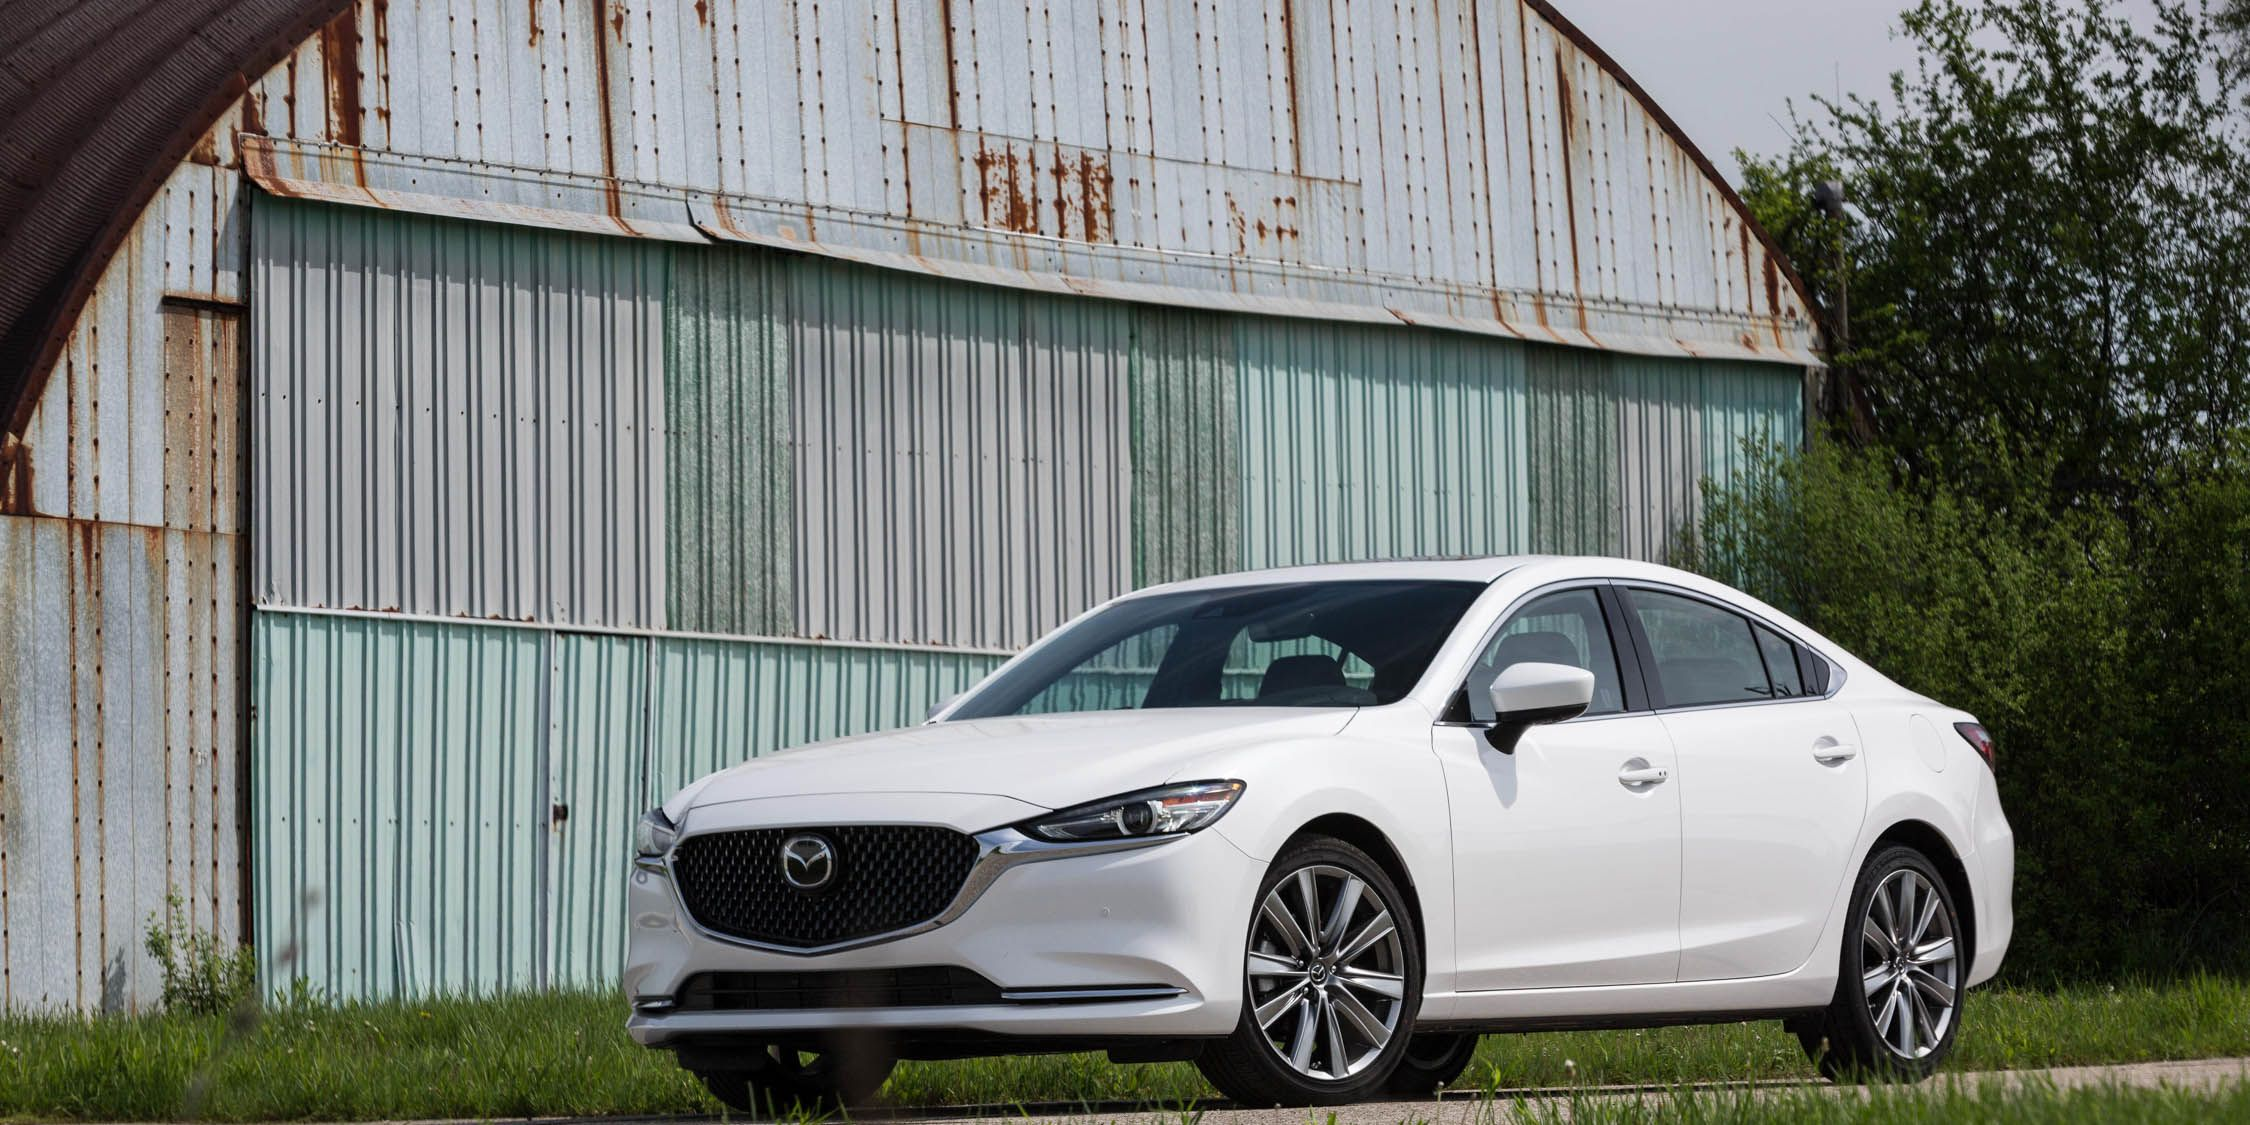 Why The 2018 Mazda 6 Should Be Your Family Sedan Pick